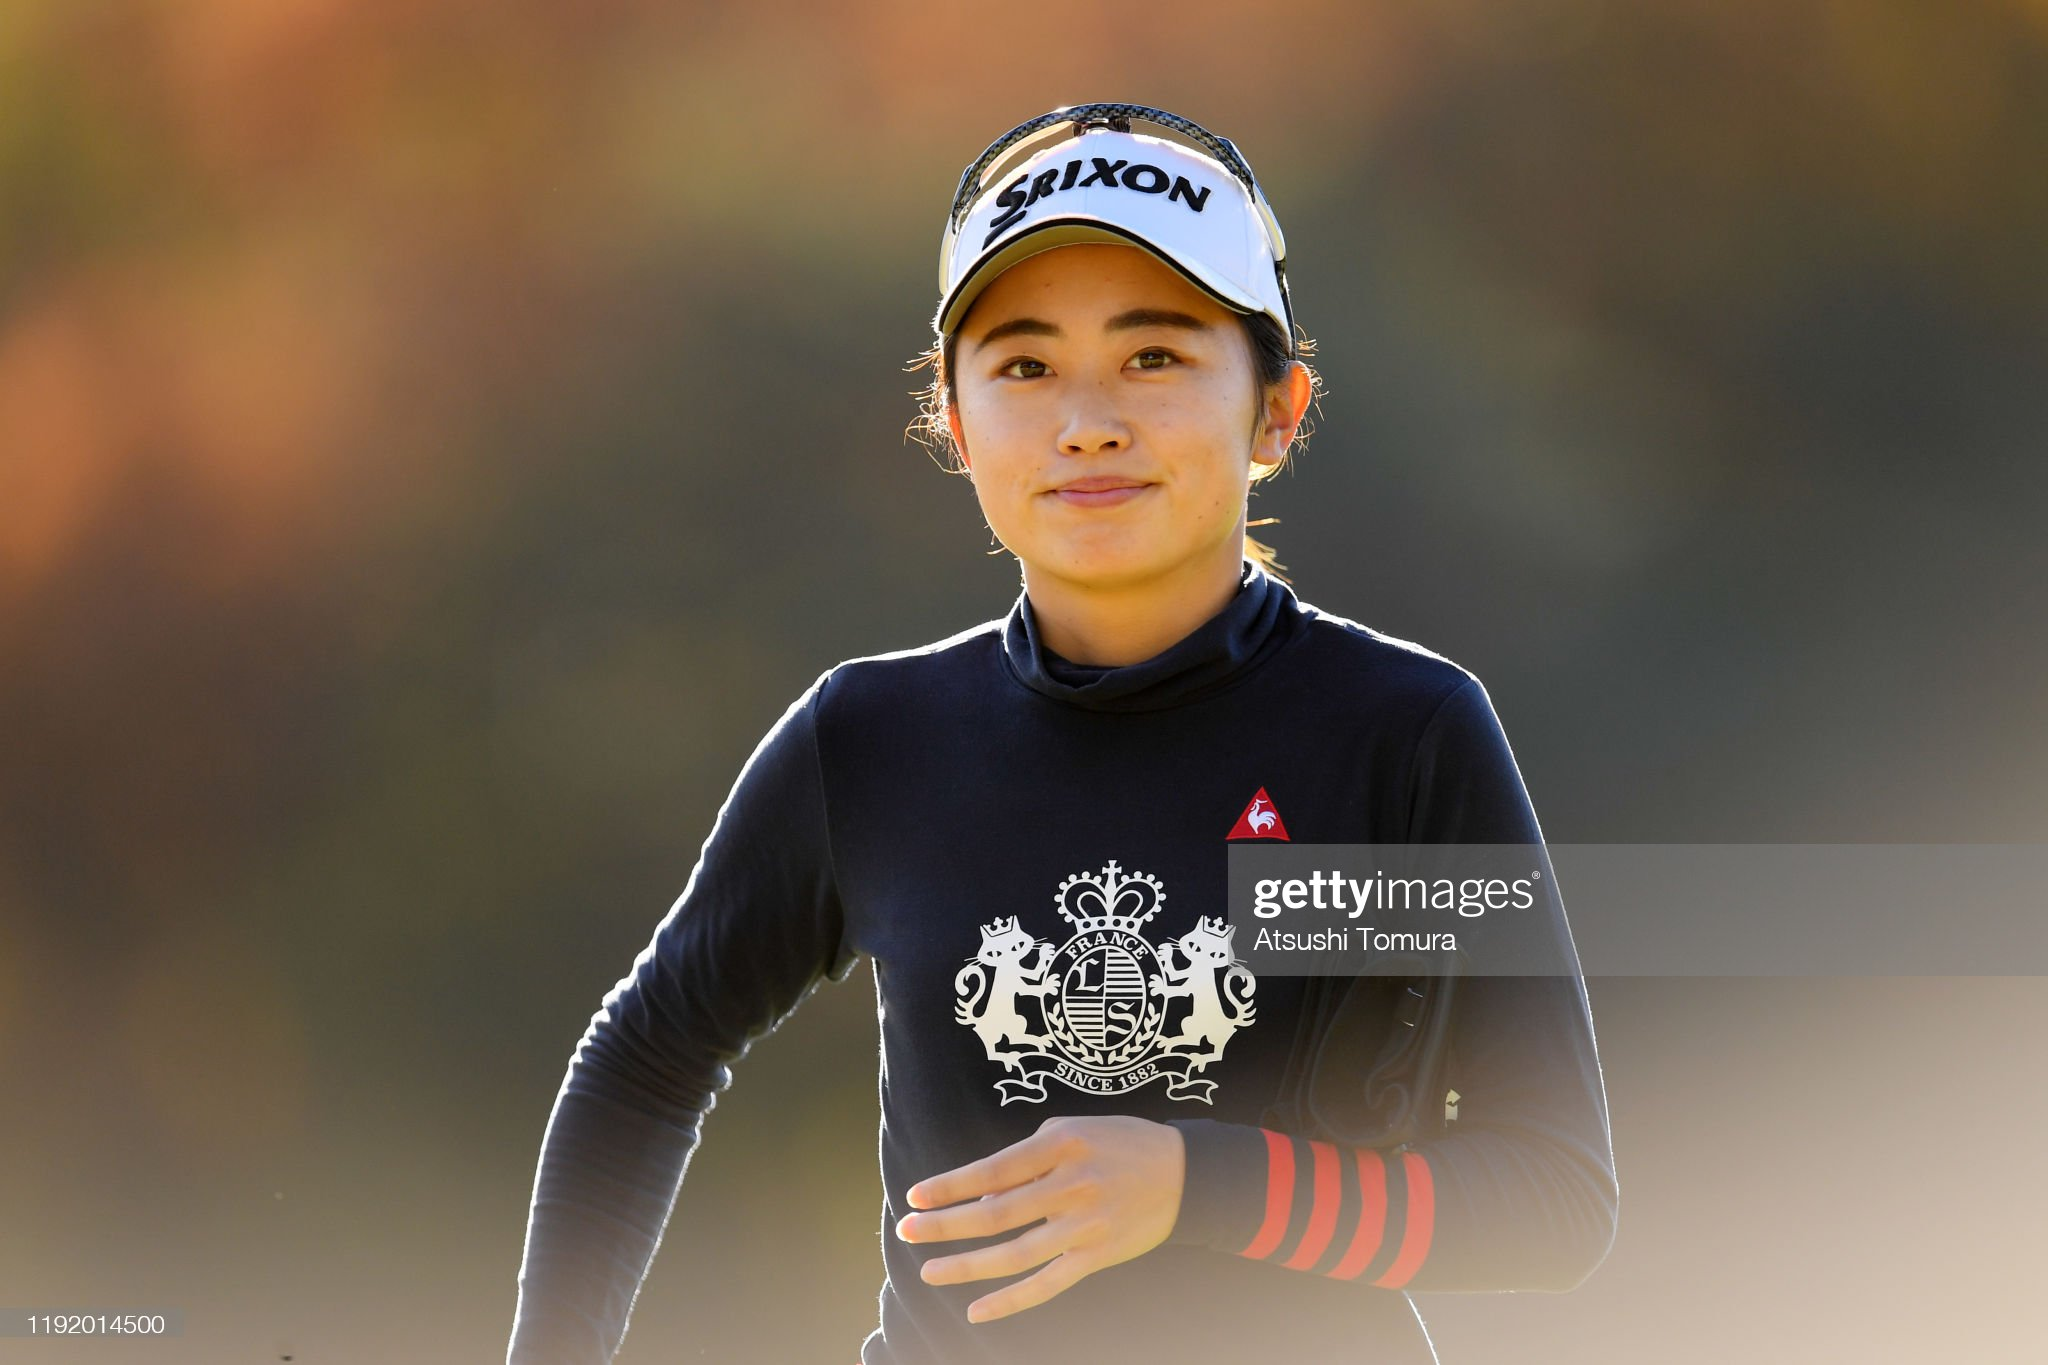 https://media.gettyimages.com/photos/yuka-yasuda-of-japan-is-seen-on-the-11th-green-during-the-third-round-picture-id1192014500?s=2048x2048